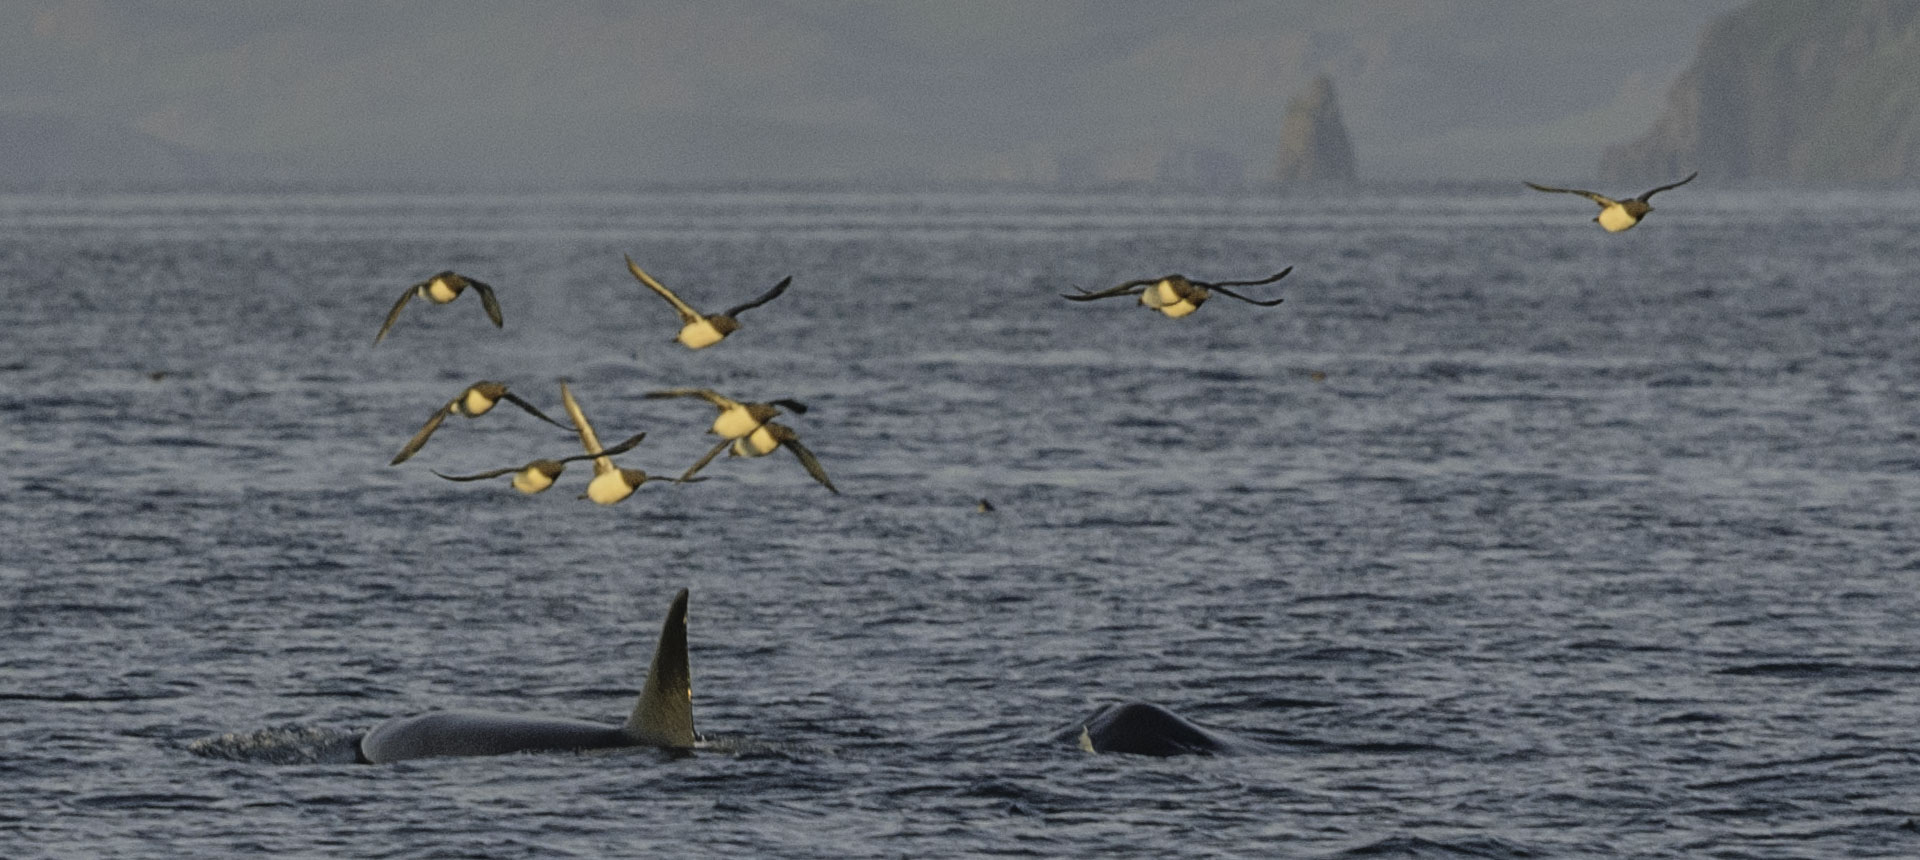 Common murres and orca / killer whales